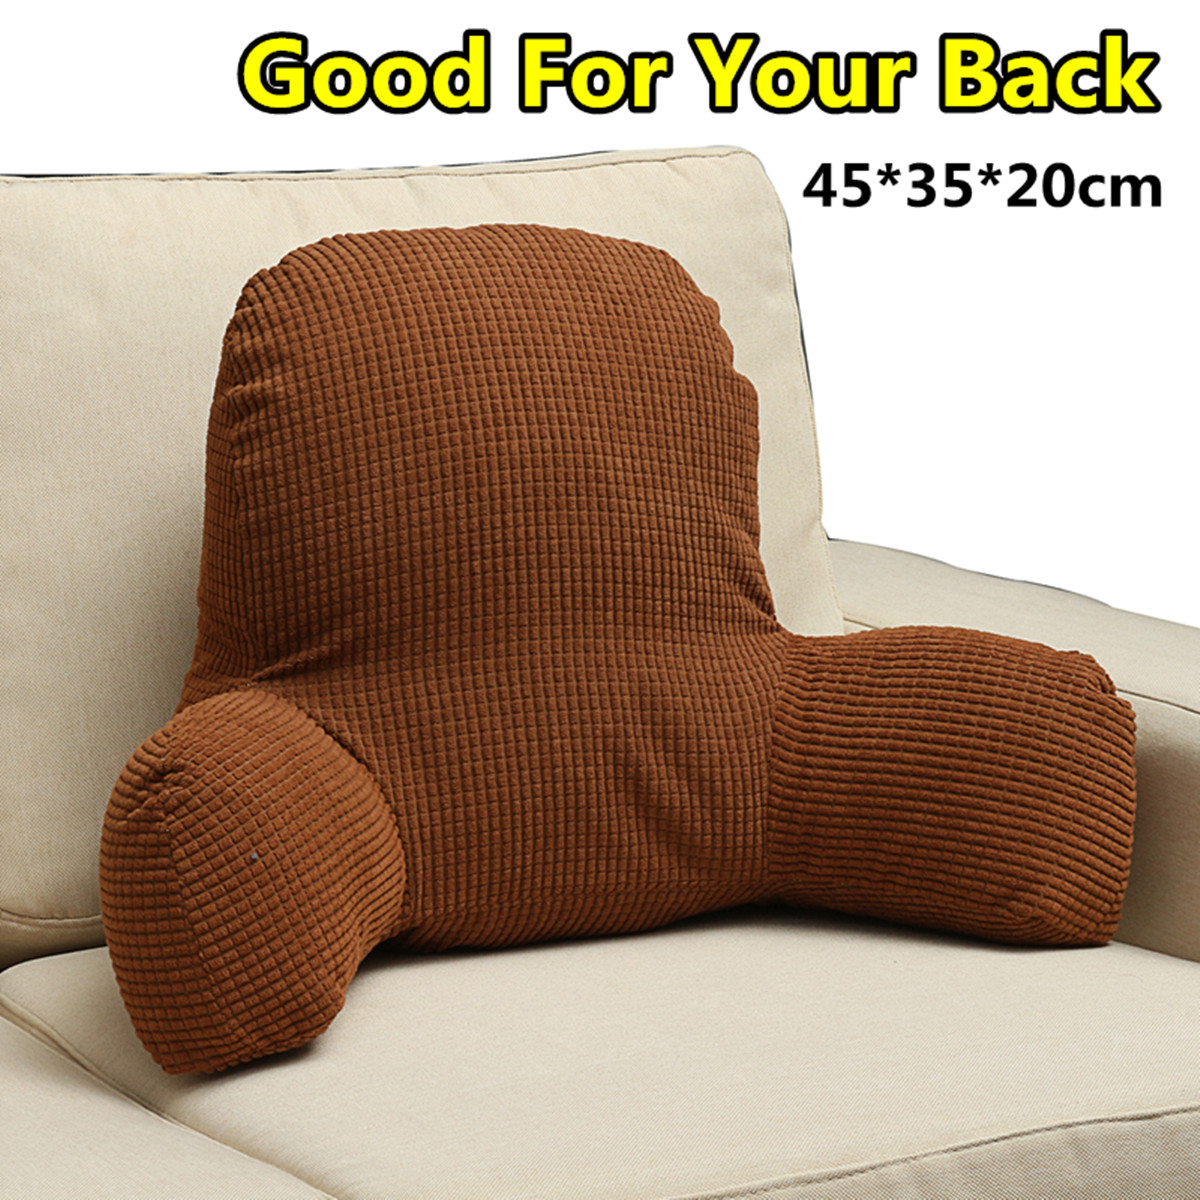 Picture of: Comfort Micro Bed Rest Reading And Bedrest Lounger Sitting Support Pillow Soft But Firmly Stuffed Pp Cotton Fill Backrest Pillow With Arms Walmart Canada